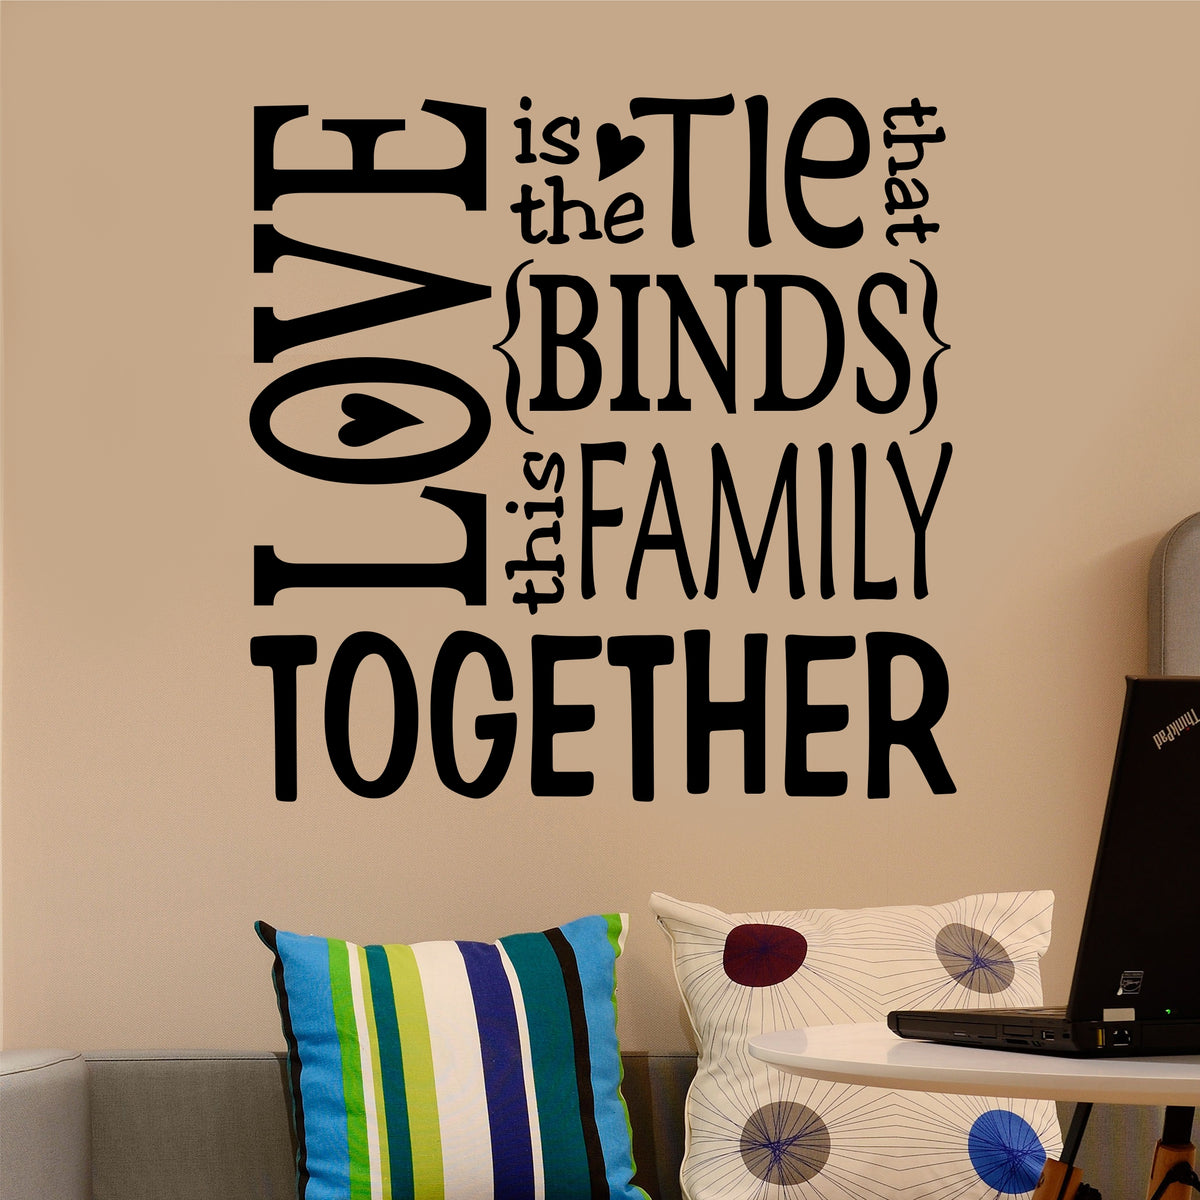 Home Wall Decal Love Binds This Family Together Vinyl